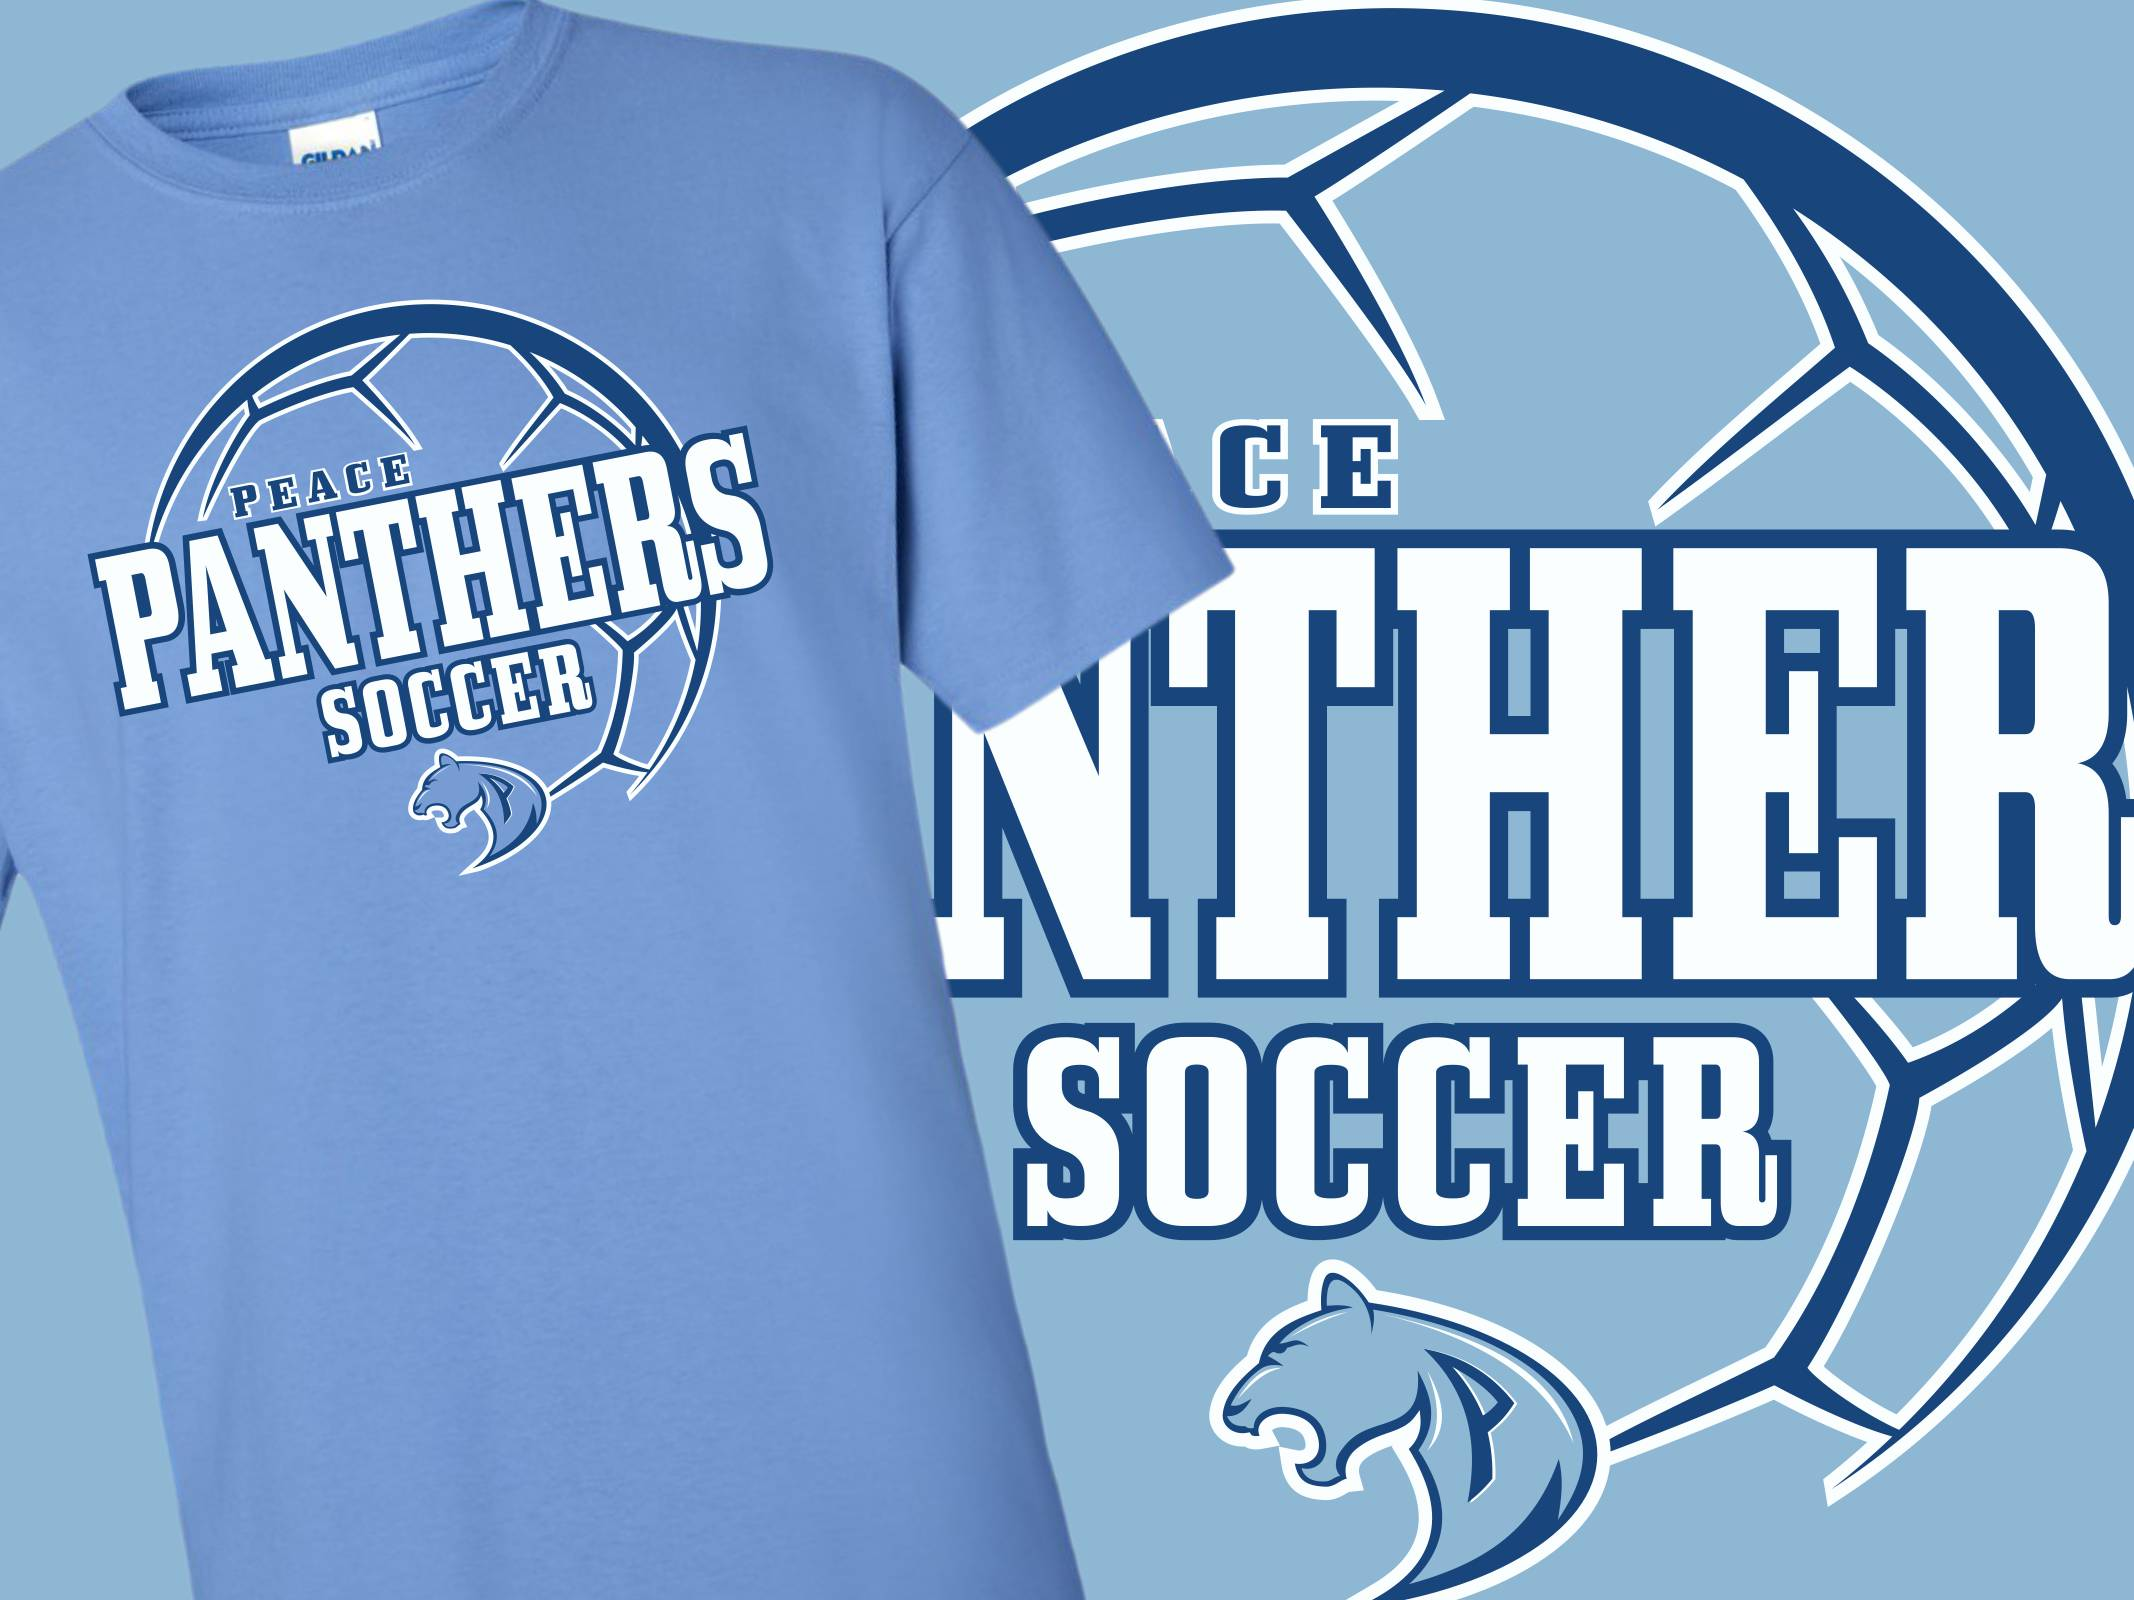 Peace Panthers Soccer